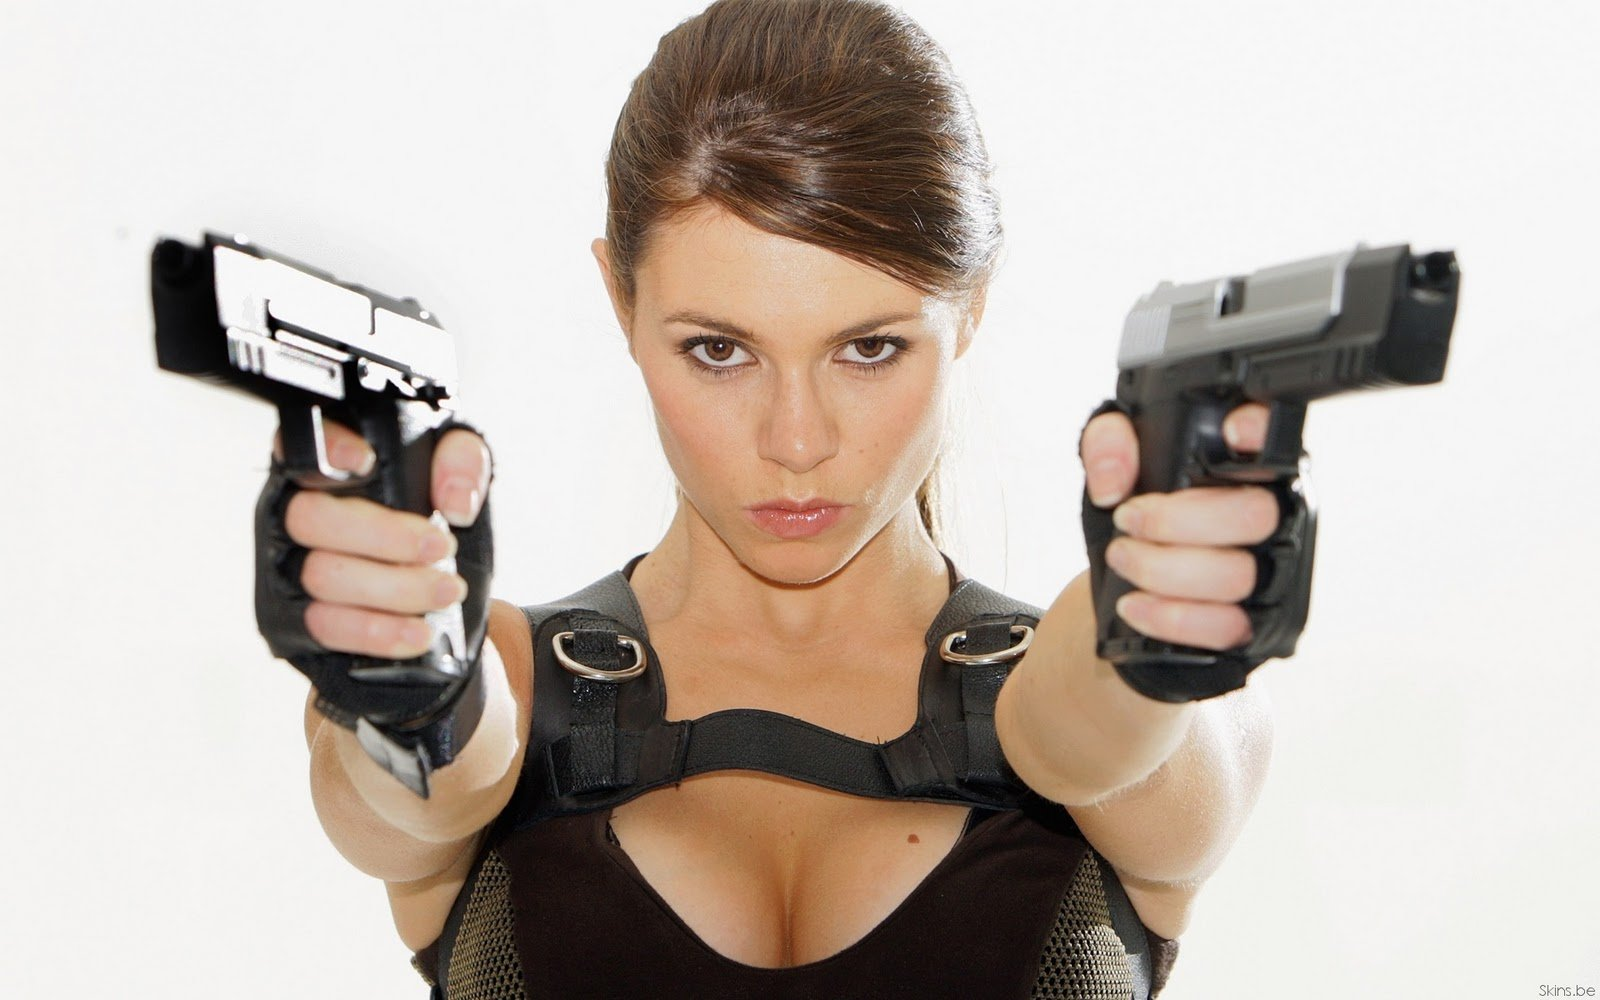 Gun wallpaper beautiful girls with gunz hot gun pic with girls 1600x1000